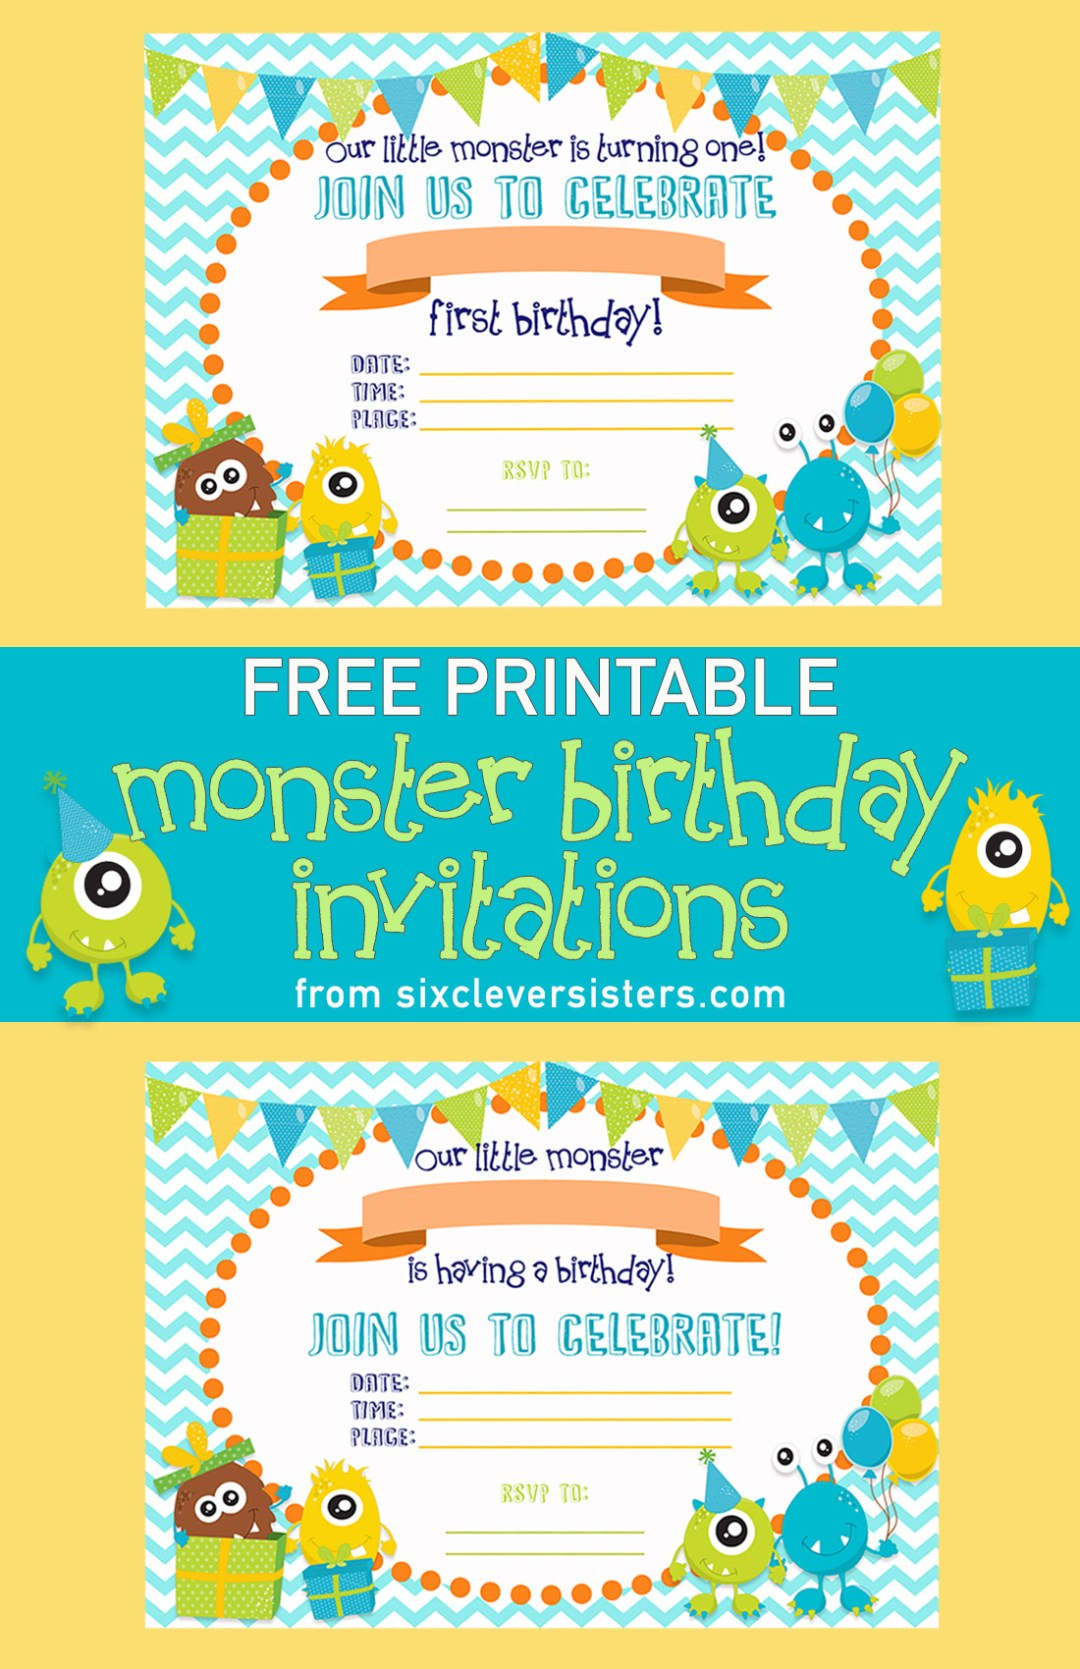 Free Printable Monster Birthday Invitations | Little Monster Birthday | Printable Birthday Invitations | Free Printables | Printable Invitations | Free Printable Birthday Invitations | Monster Birthday Party | Download and print these cute little monster invites for your little monster's birthday party! Available on the Six Clever Sister's blog!